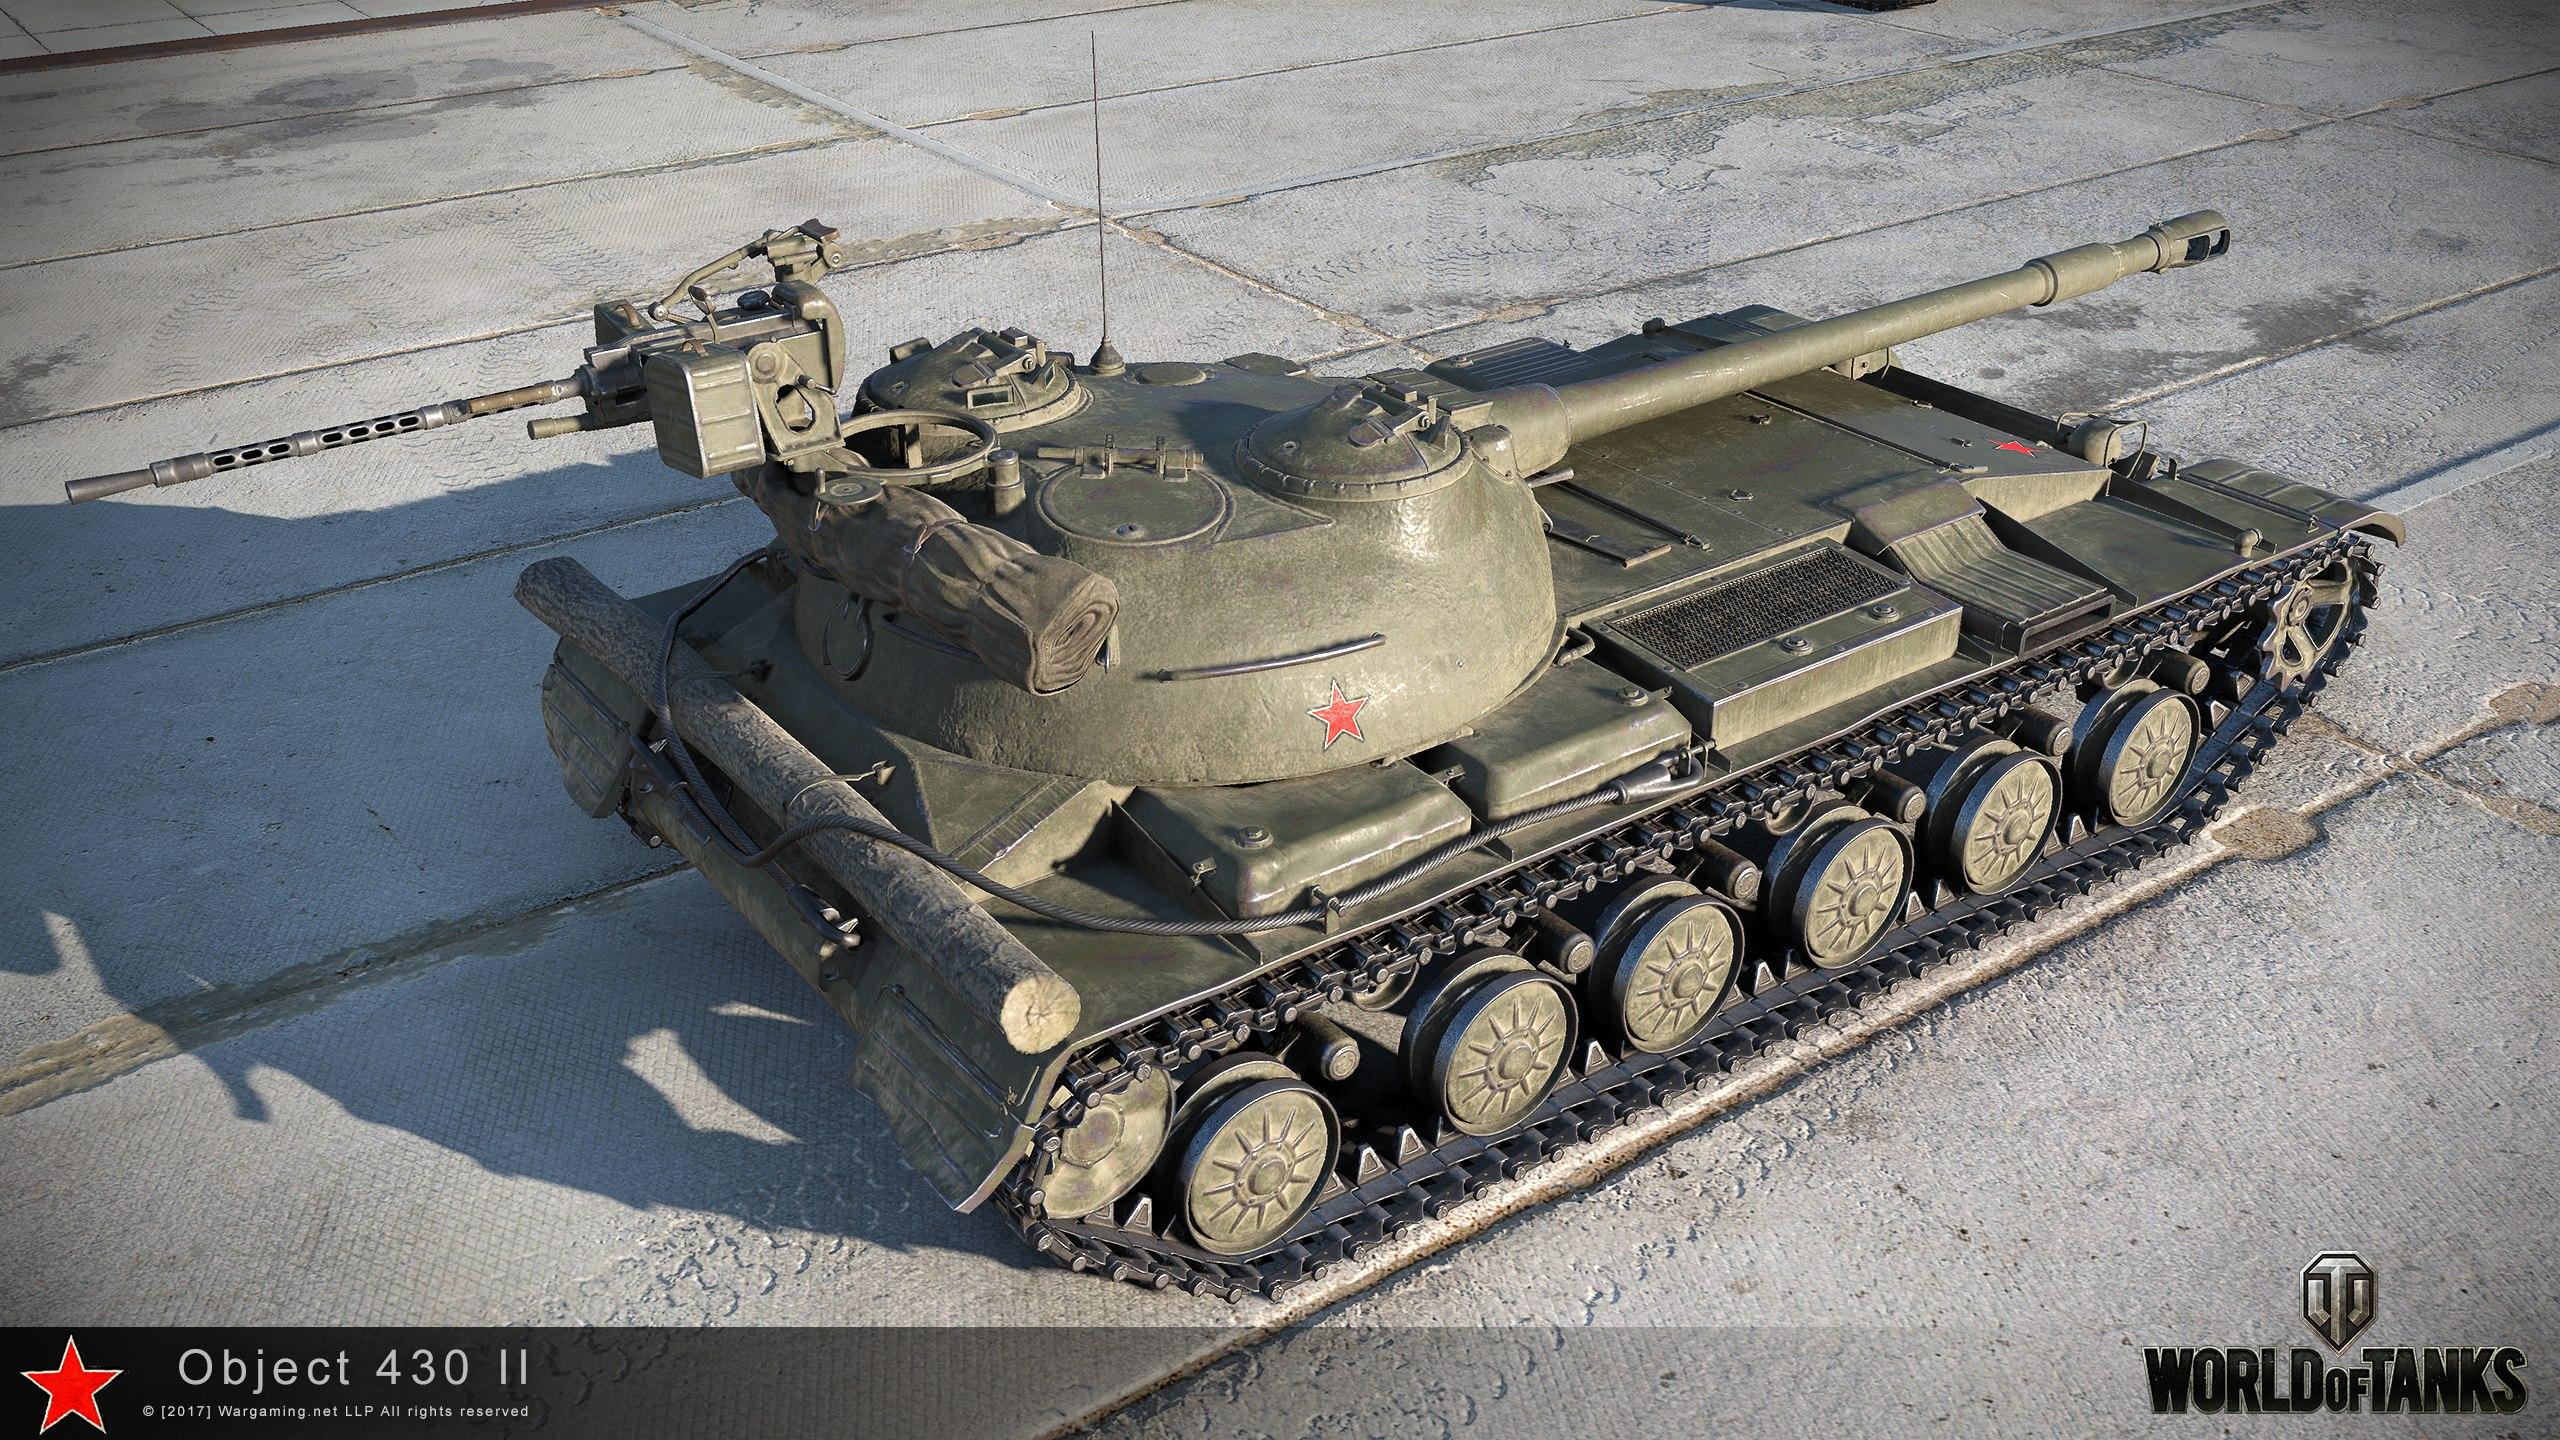 object 430 version ii 9.18 hd renders – the armored patrol